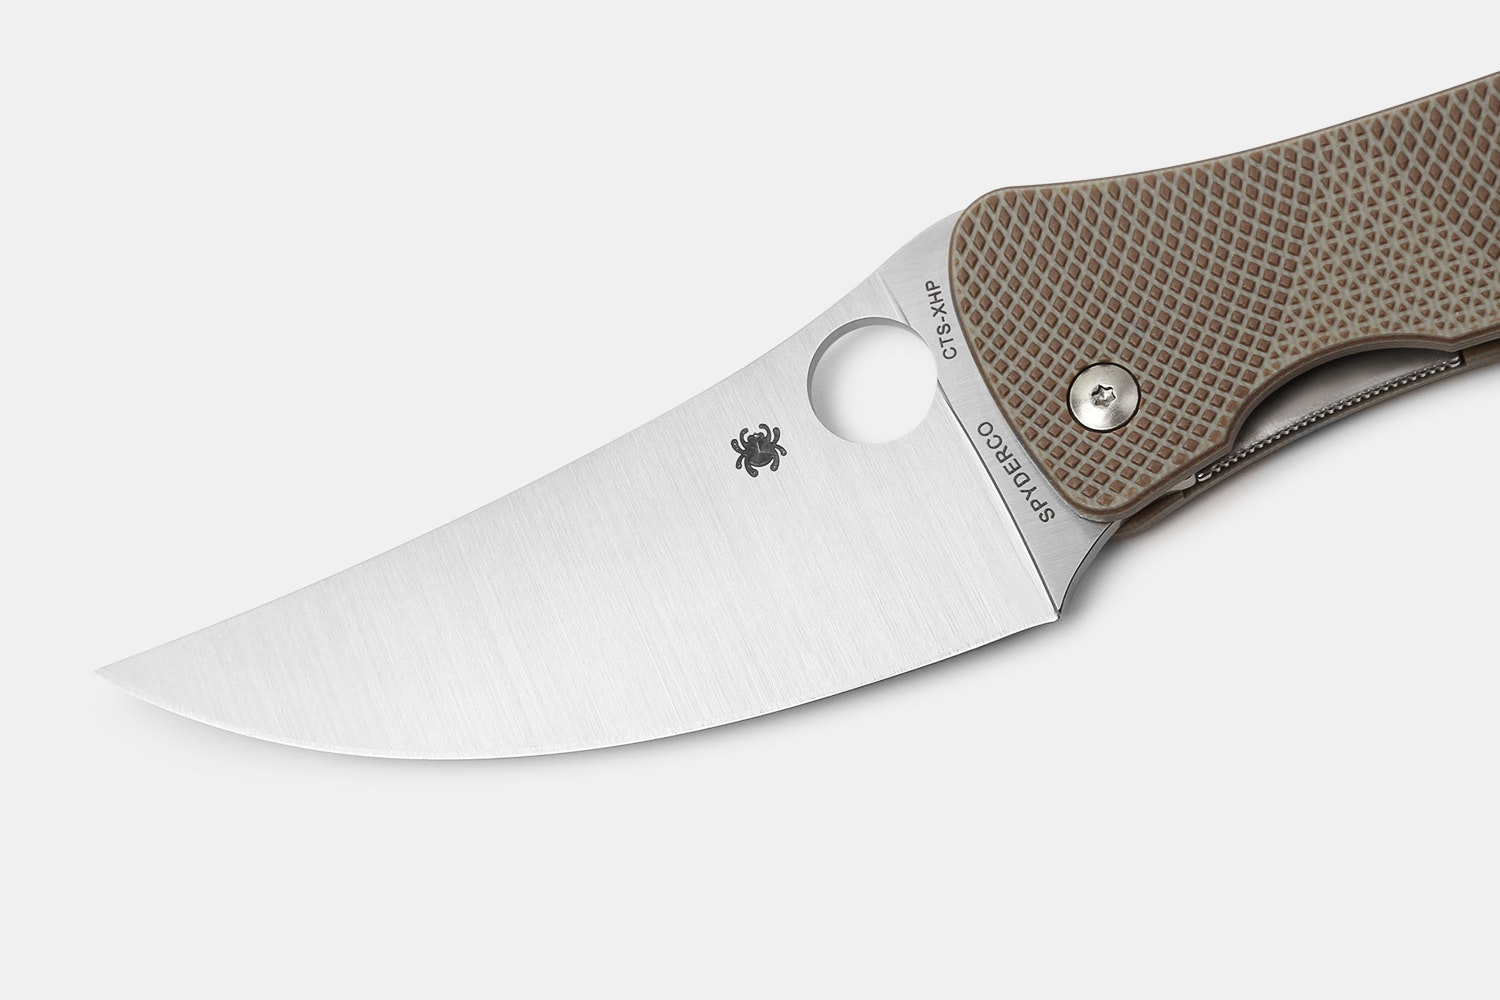 Spyderco Hundred Pacer Folding Knife